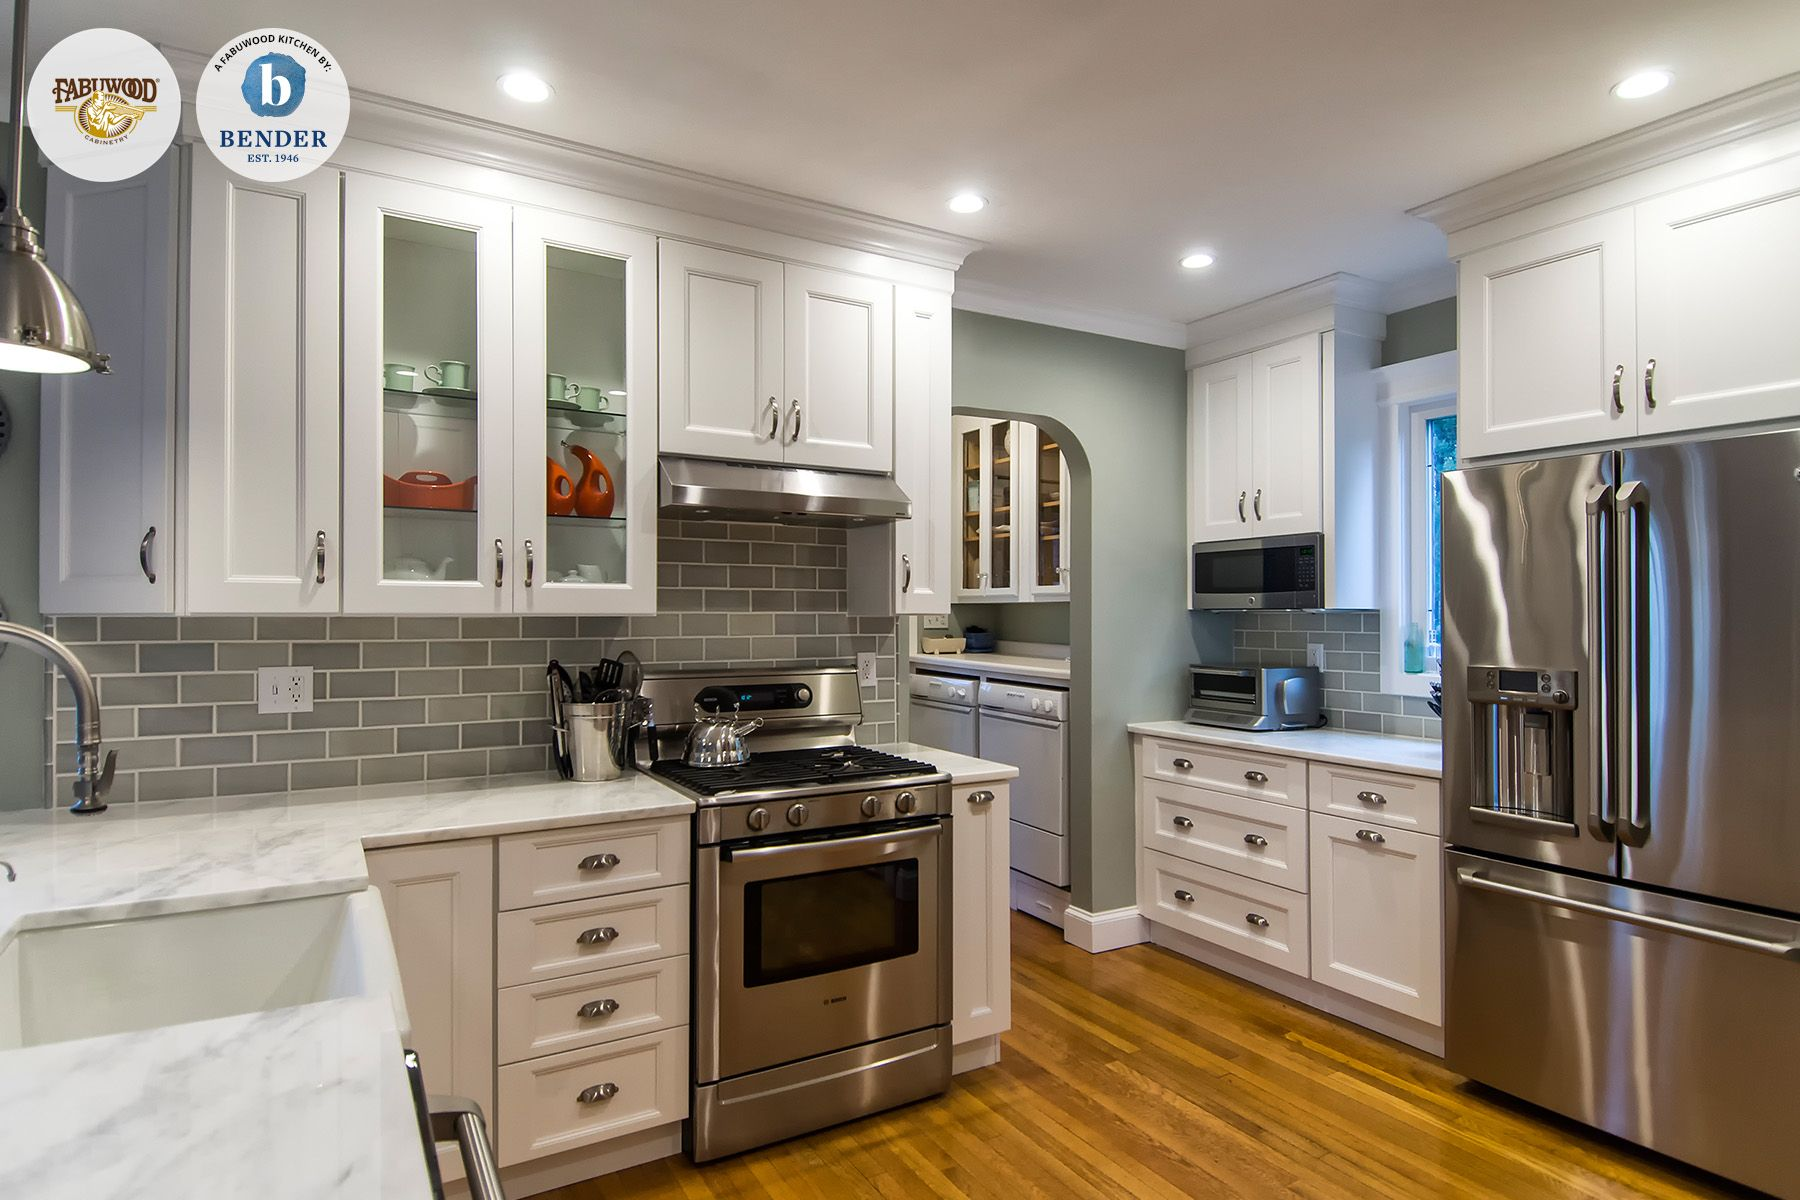 This Beautiful Fabuwood Nexus Frost Kitchen Was Built By Bender Plumbing Located In Norwalk